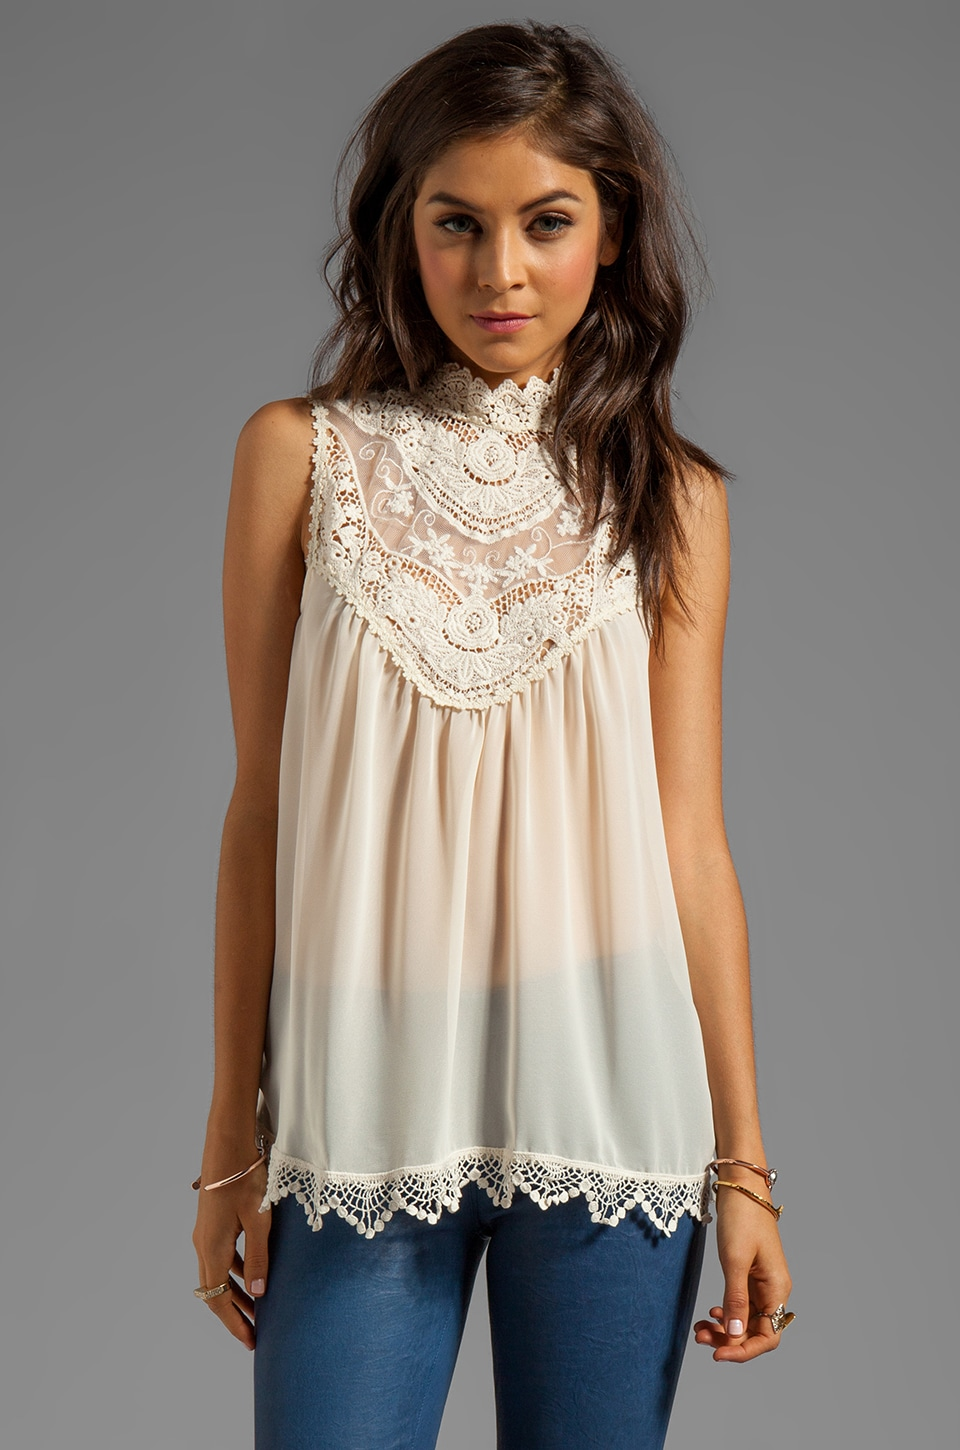 BLAQUE LABEL Barque Blouse in Cream